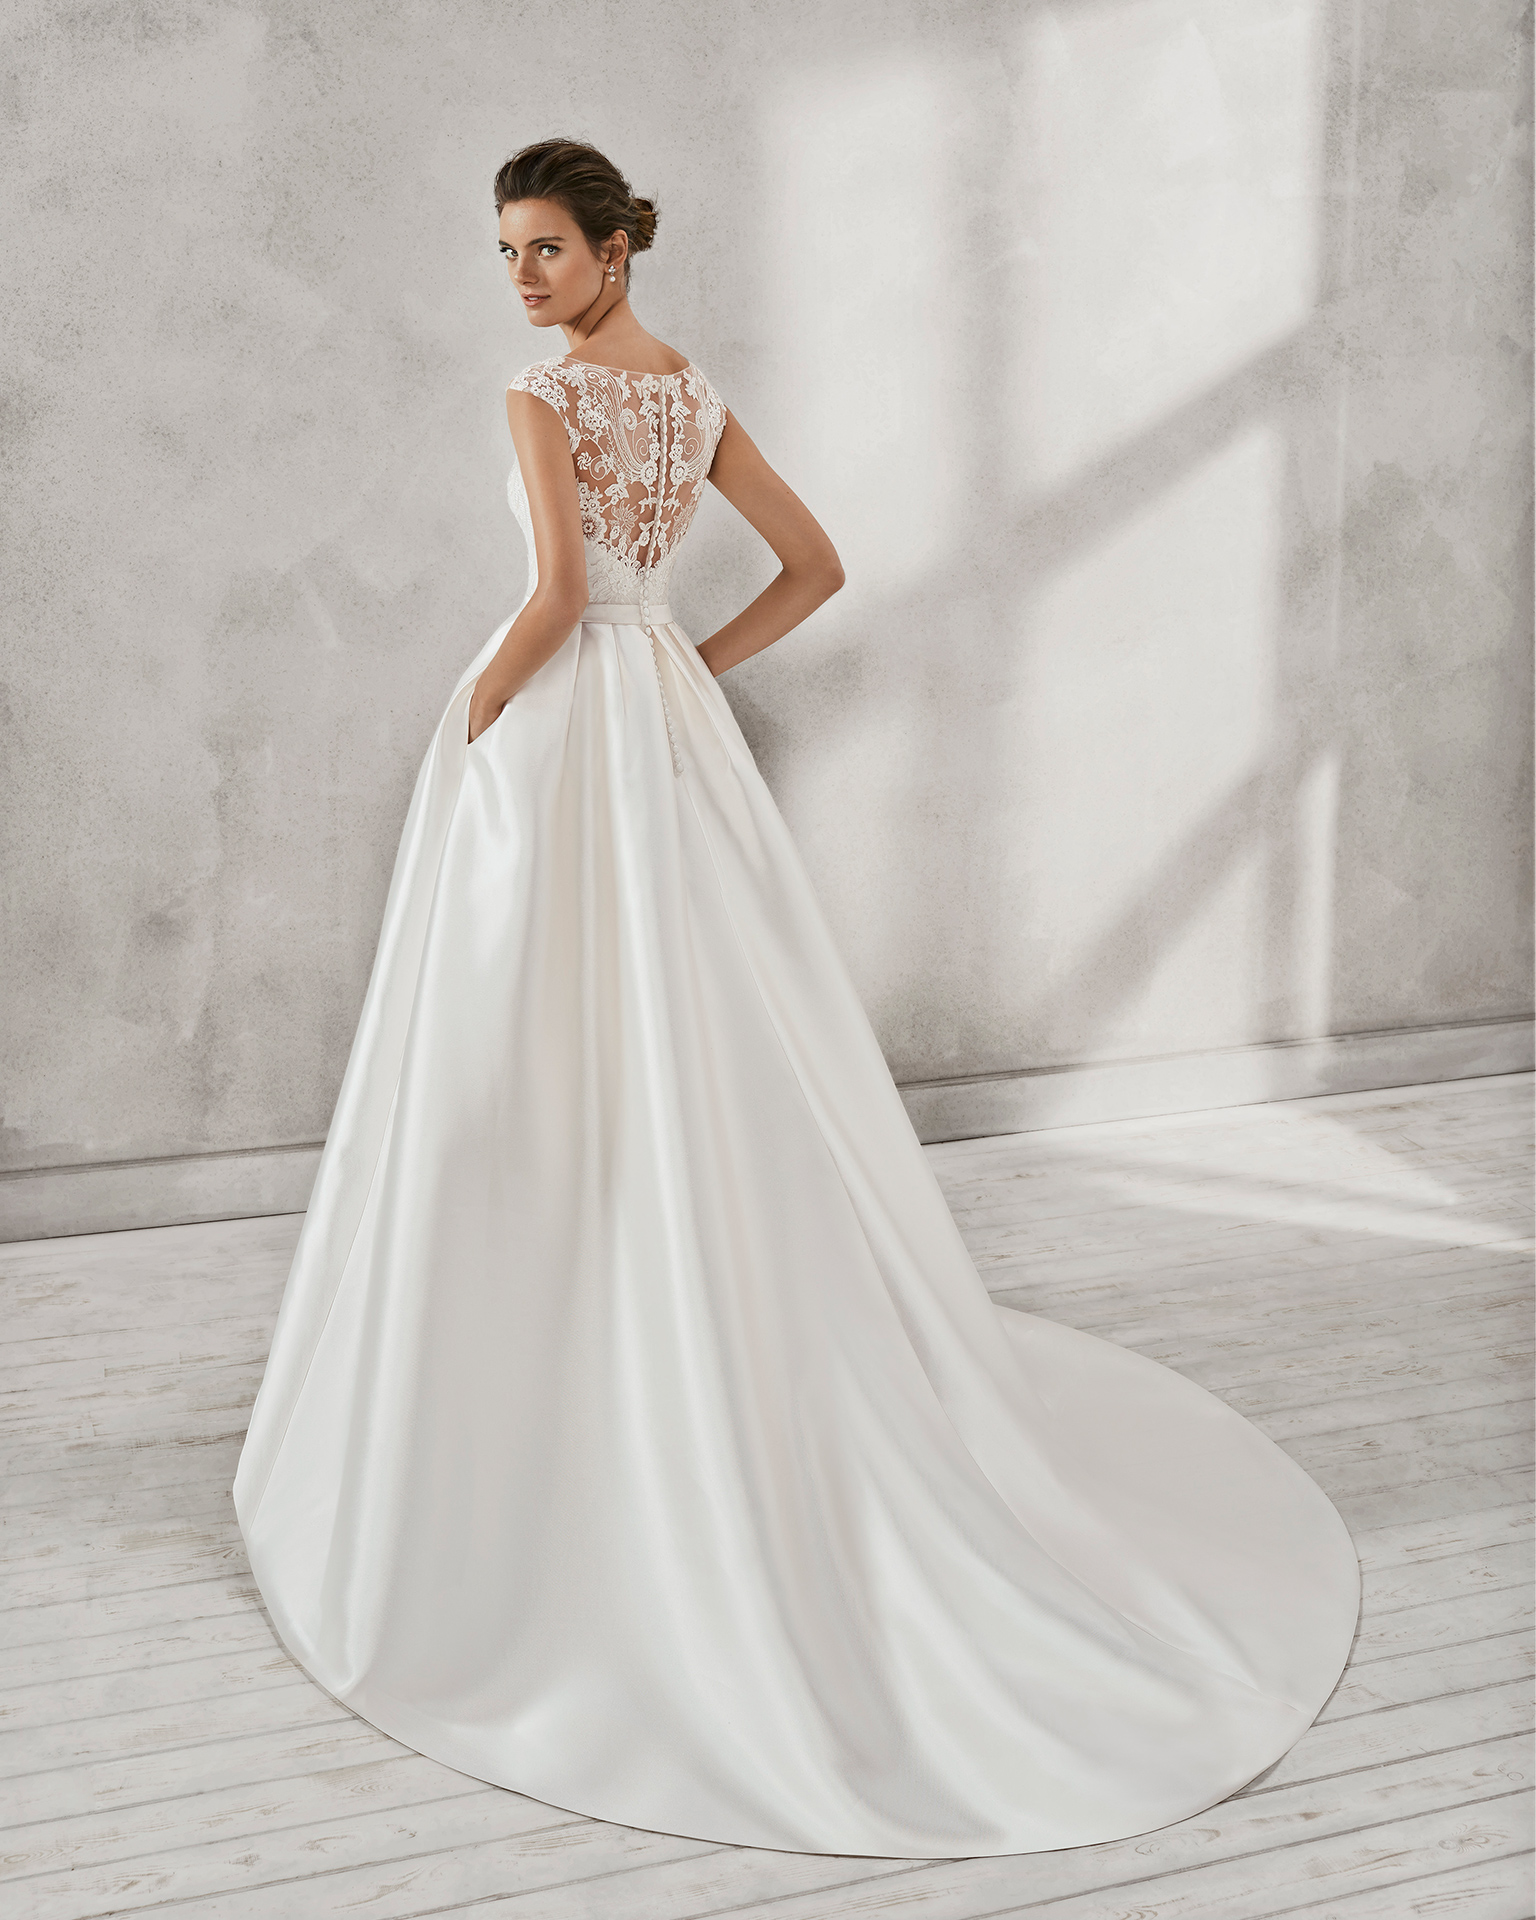 Classic-style beaded lace and mikado wedding dress with illusion neckline.